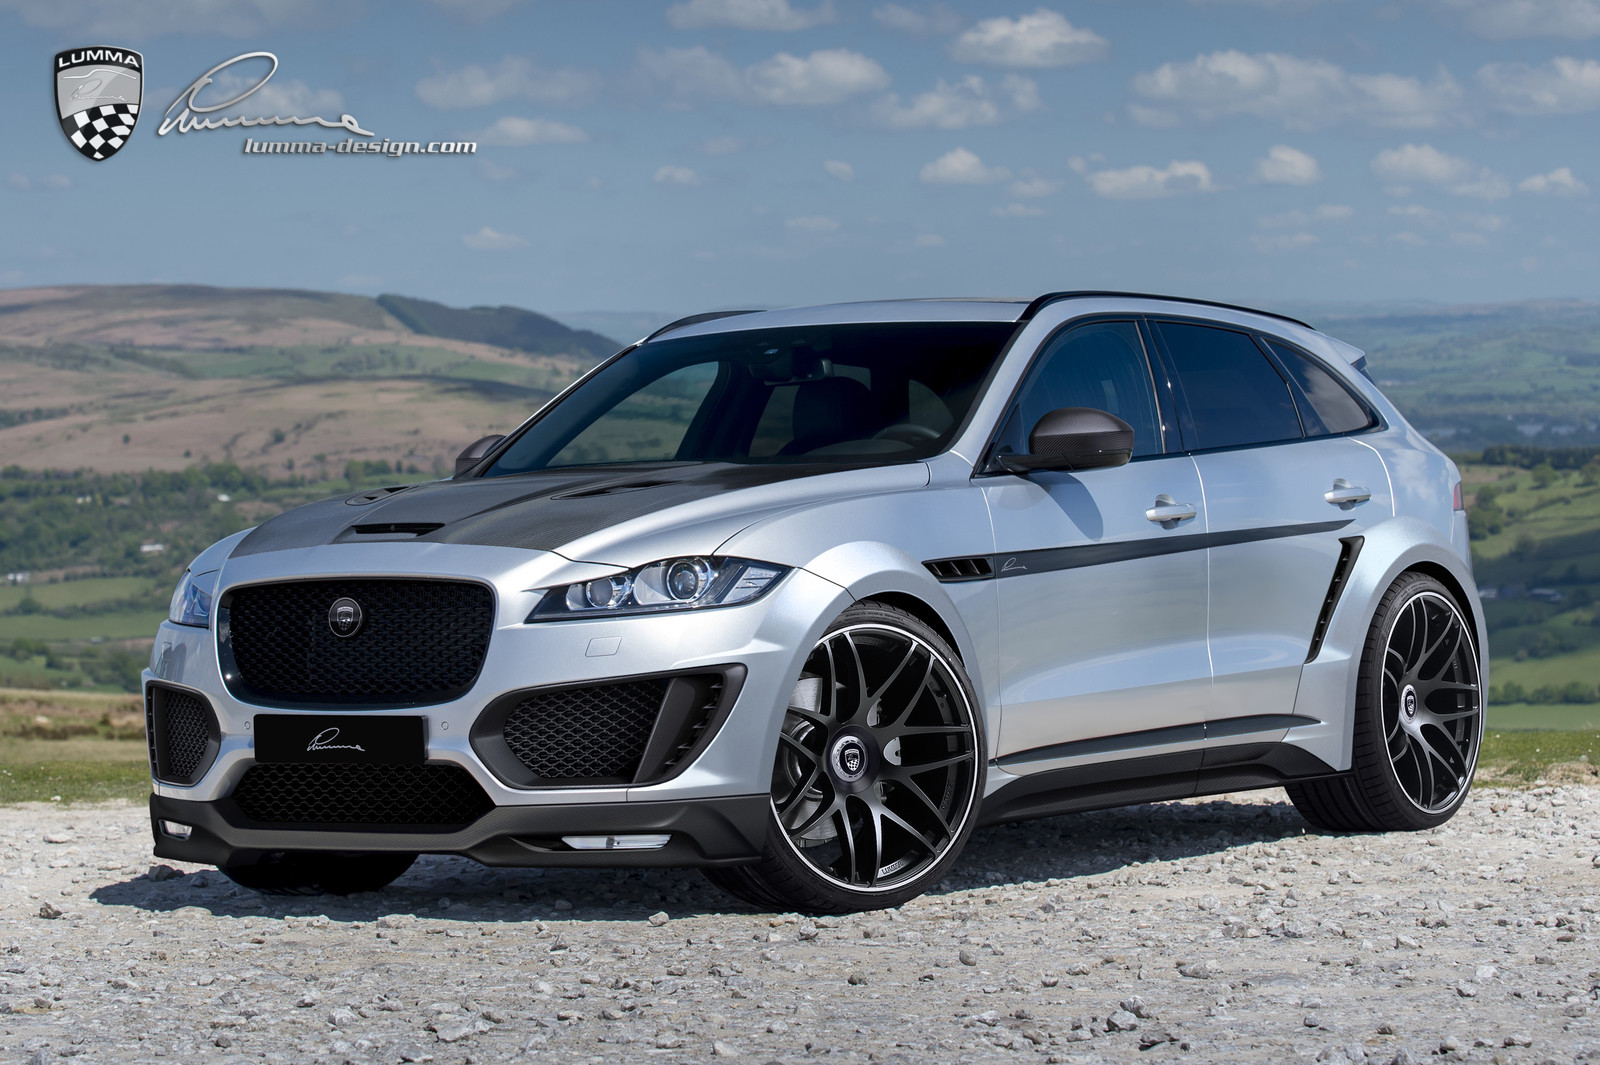 Tuning Gallery Parts For Jaguar F Pace Clr Lumma Design